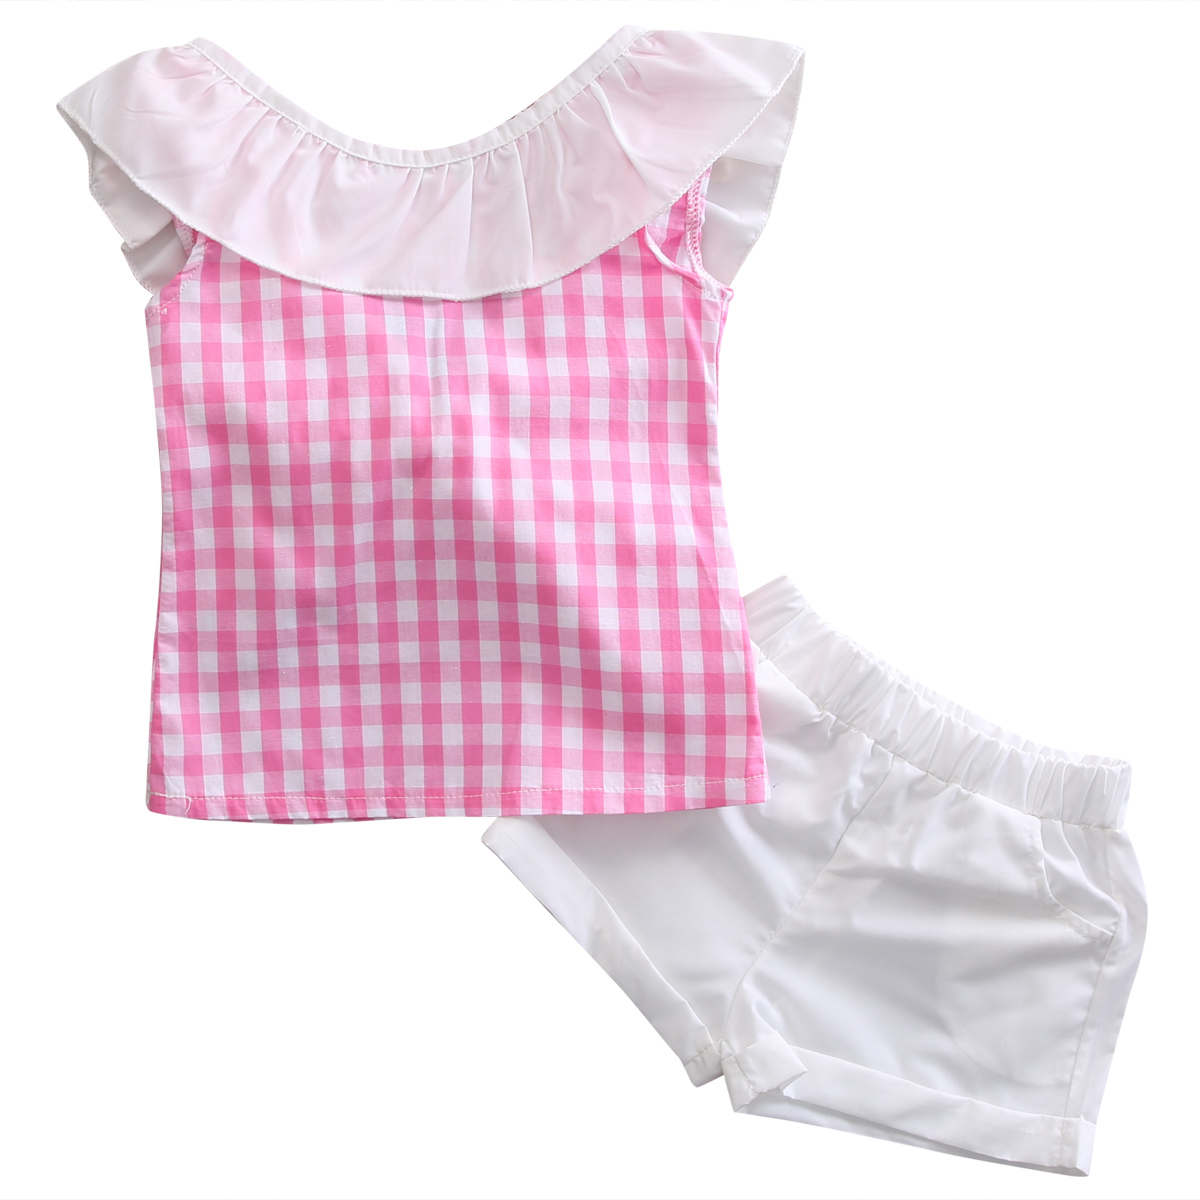 2PCS Toddler Kids Baby Girl Clothes 2017 Summer Sleeveless Plaid Shirt Ruffles Back Bow Tops +Shorts Pant Children Clothing Set 2017 cute kids girl clothing set off shoulder lace white t shirt tops denim pant jeans 2pcs children clothes 2 7y